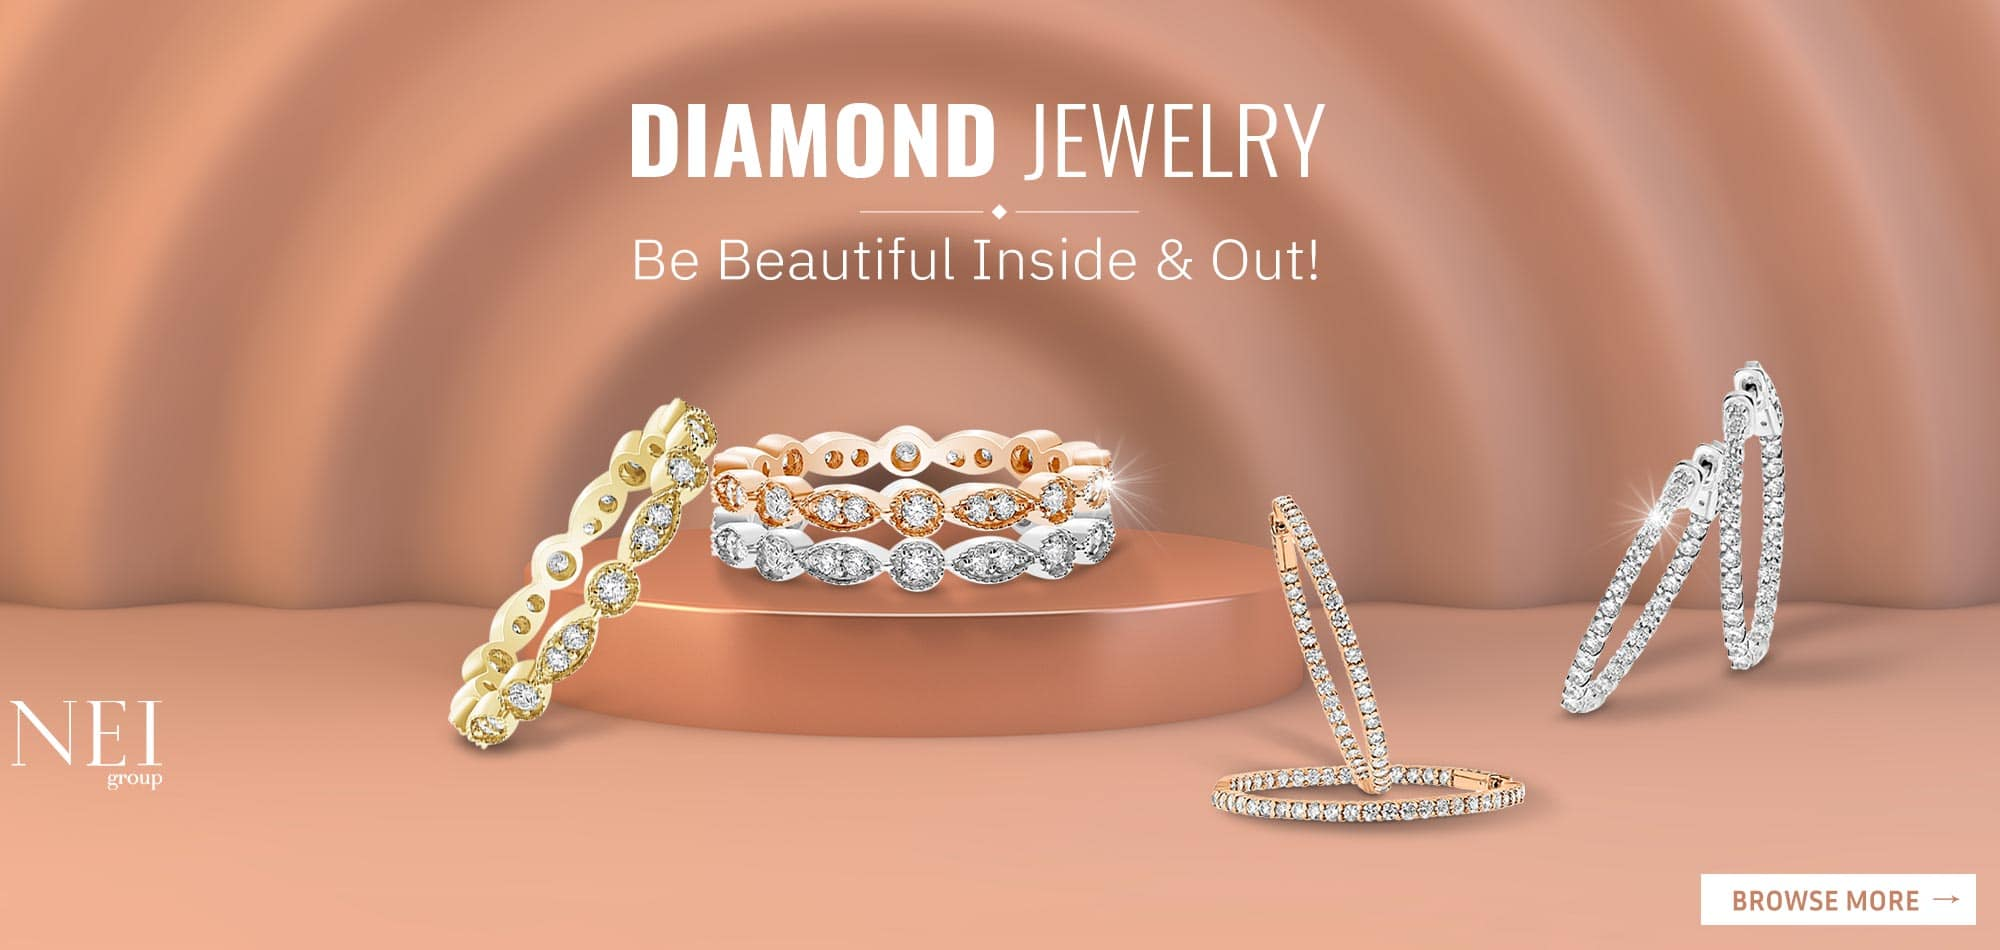 NEI Group Jewelry Collection Available At M&M Jewelers